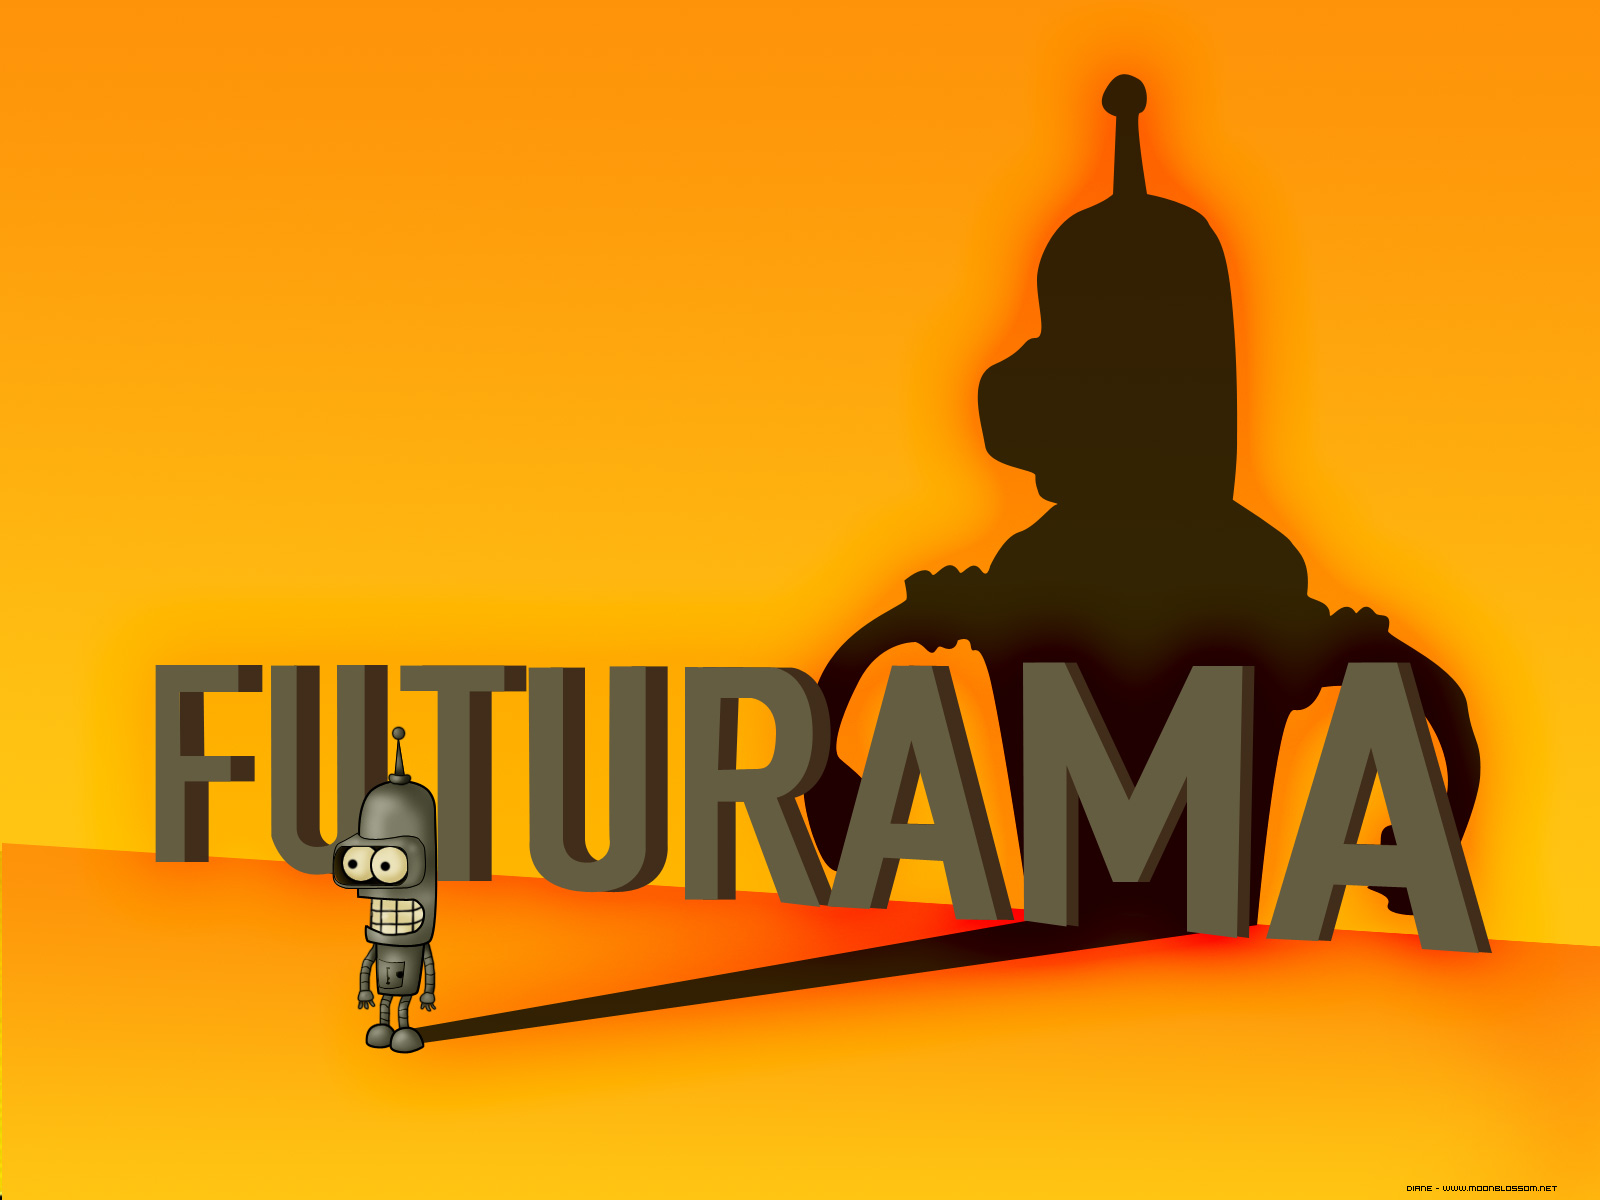 Futurama Bender Wallpaper 1600x1200 Futurama Bender Baby 1600x1200